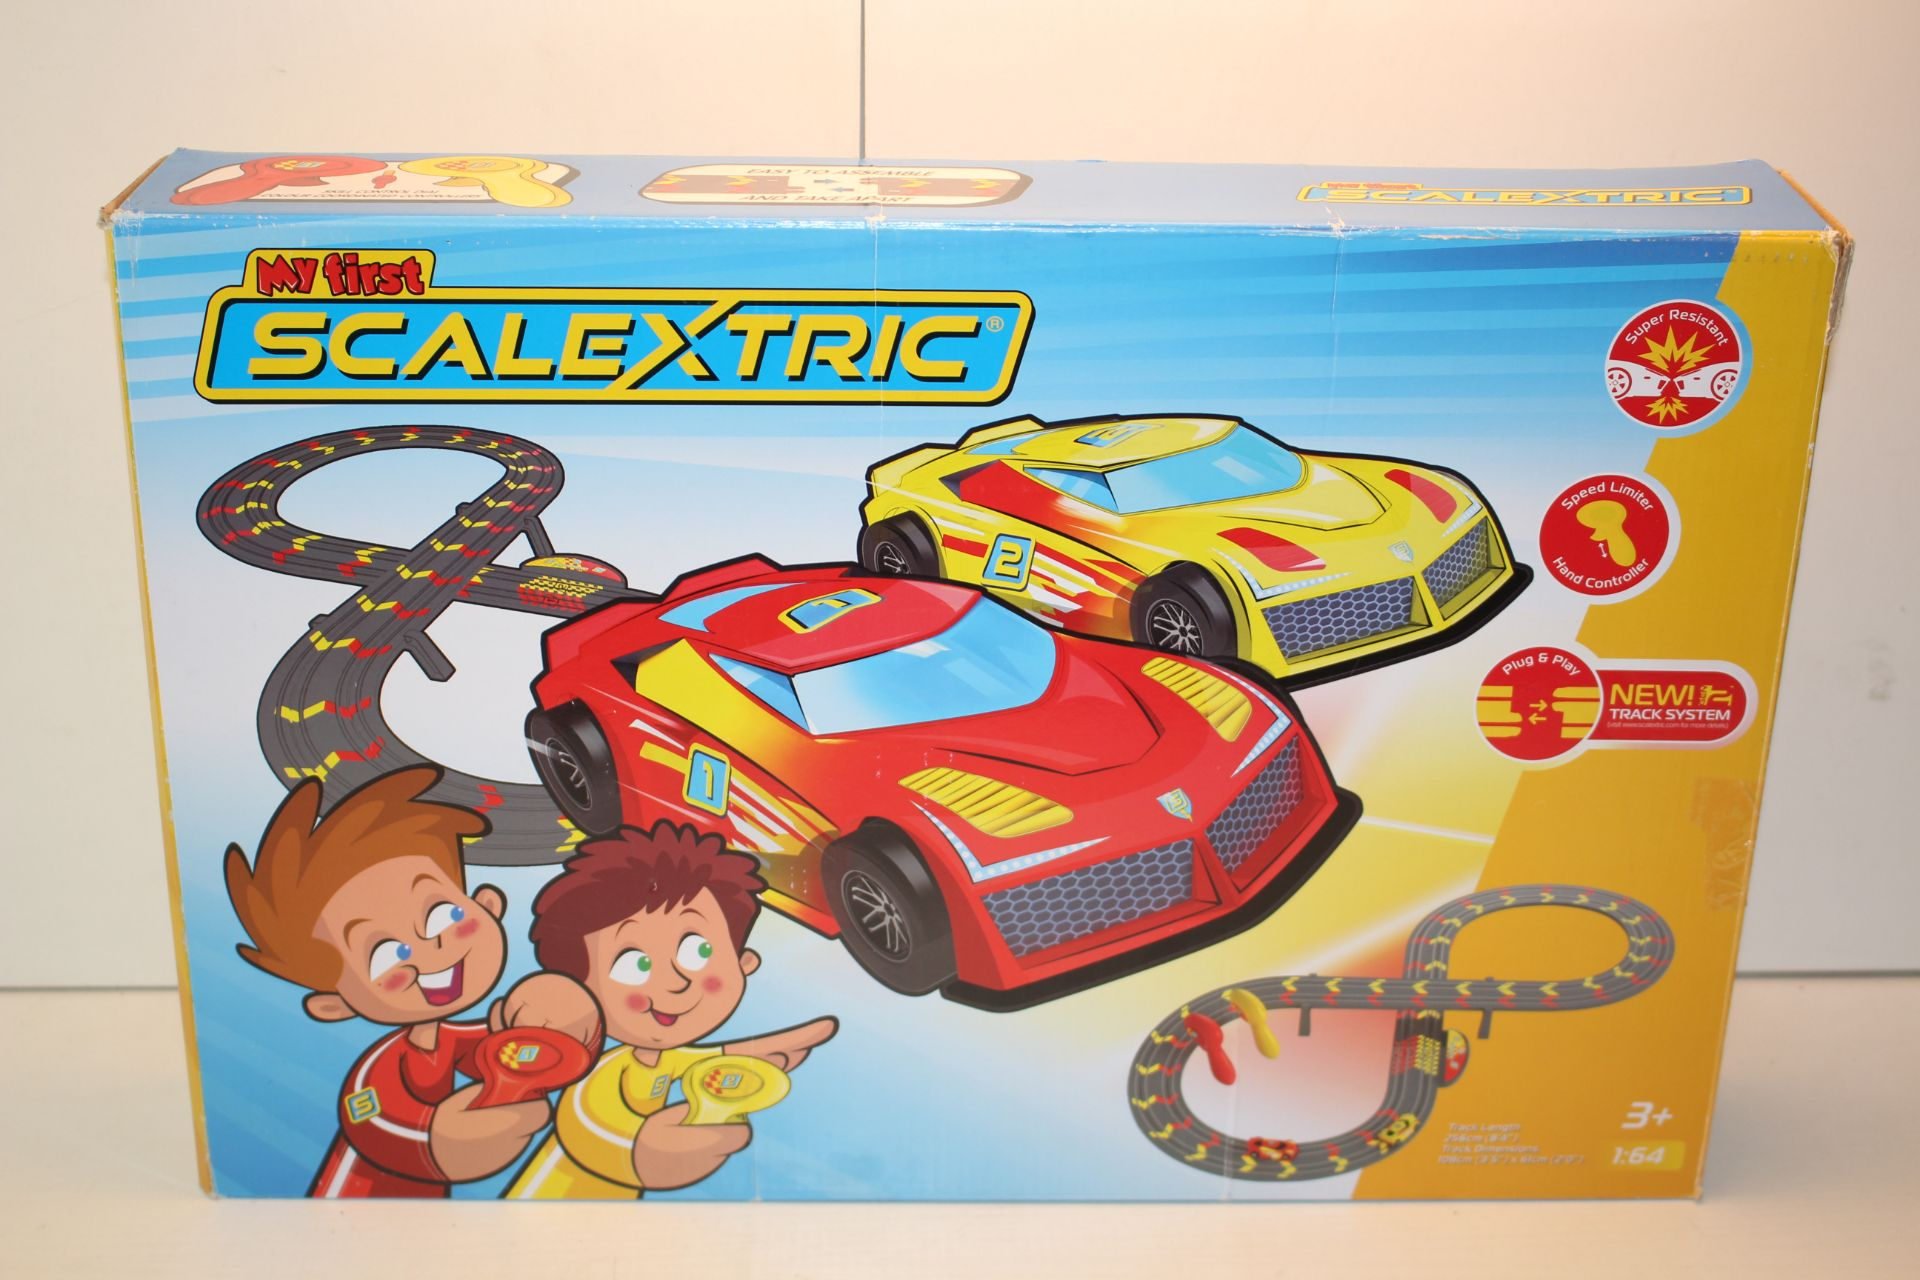 BOXED MY FIRST SCALEXTRIC RRP £39.97Condition ReportAppraisal Available on Request- All Items are